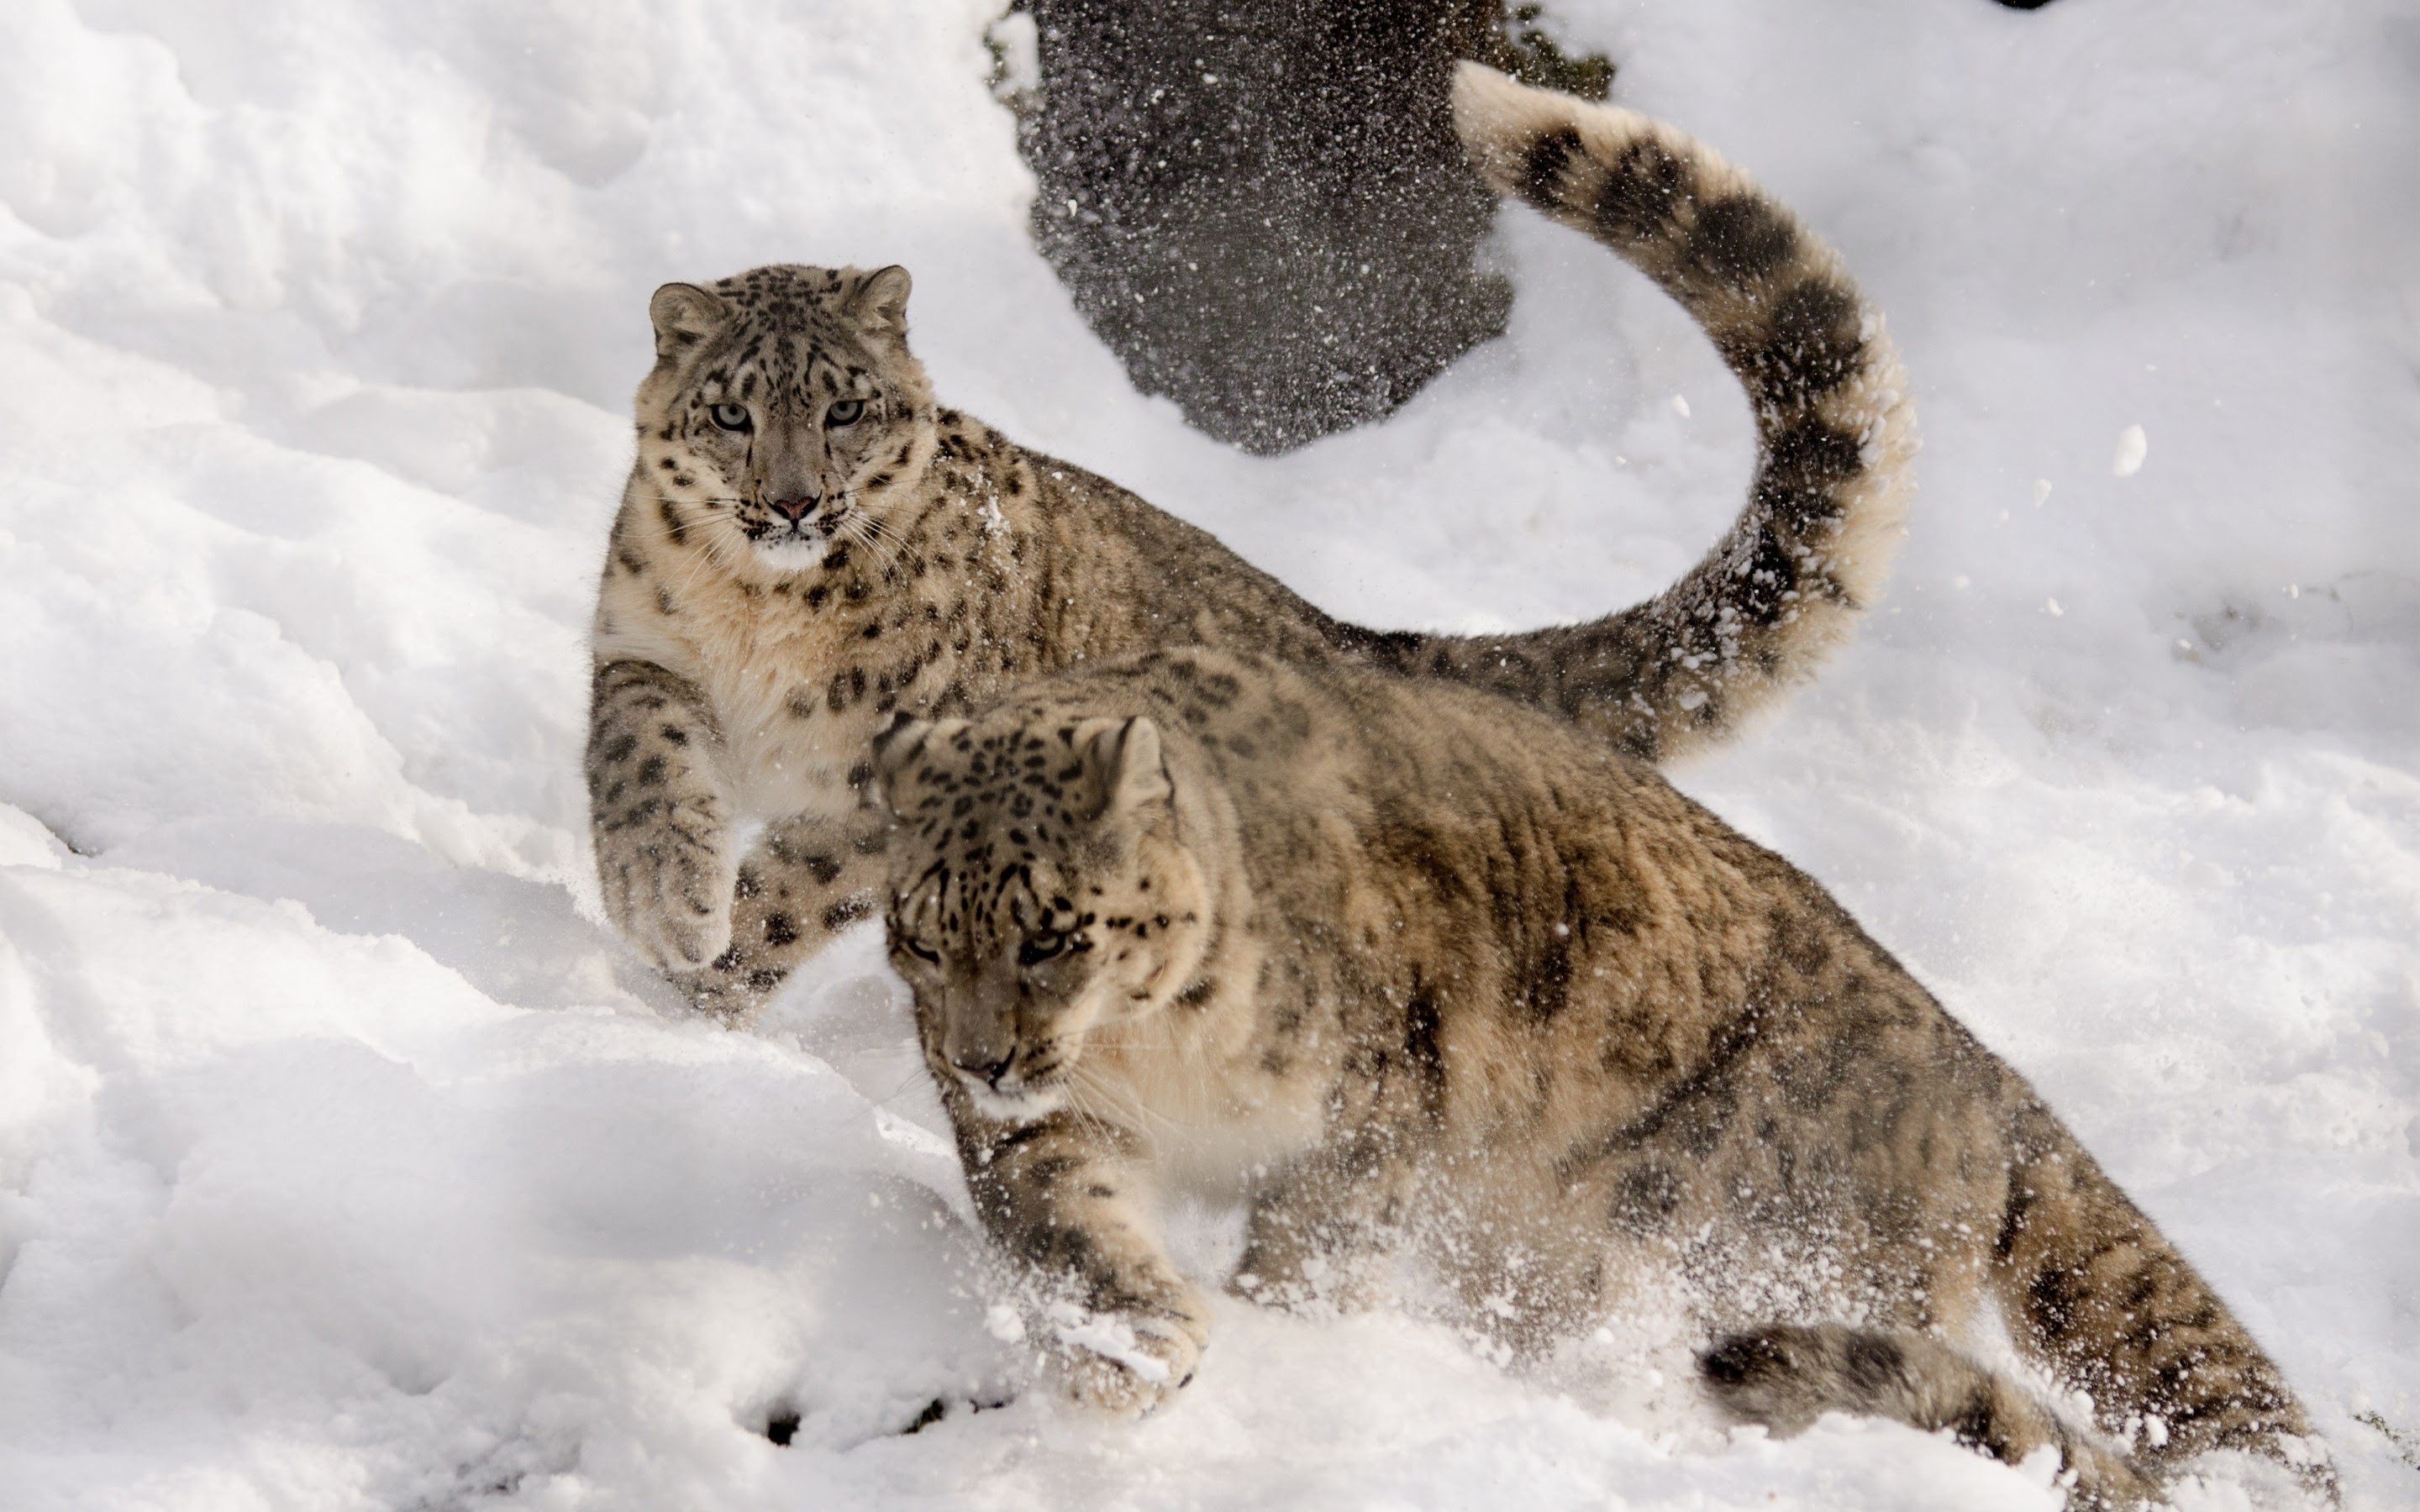 Snow Leopard Cubs Wallpapers in jpg format for free download